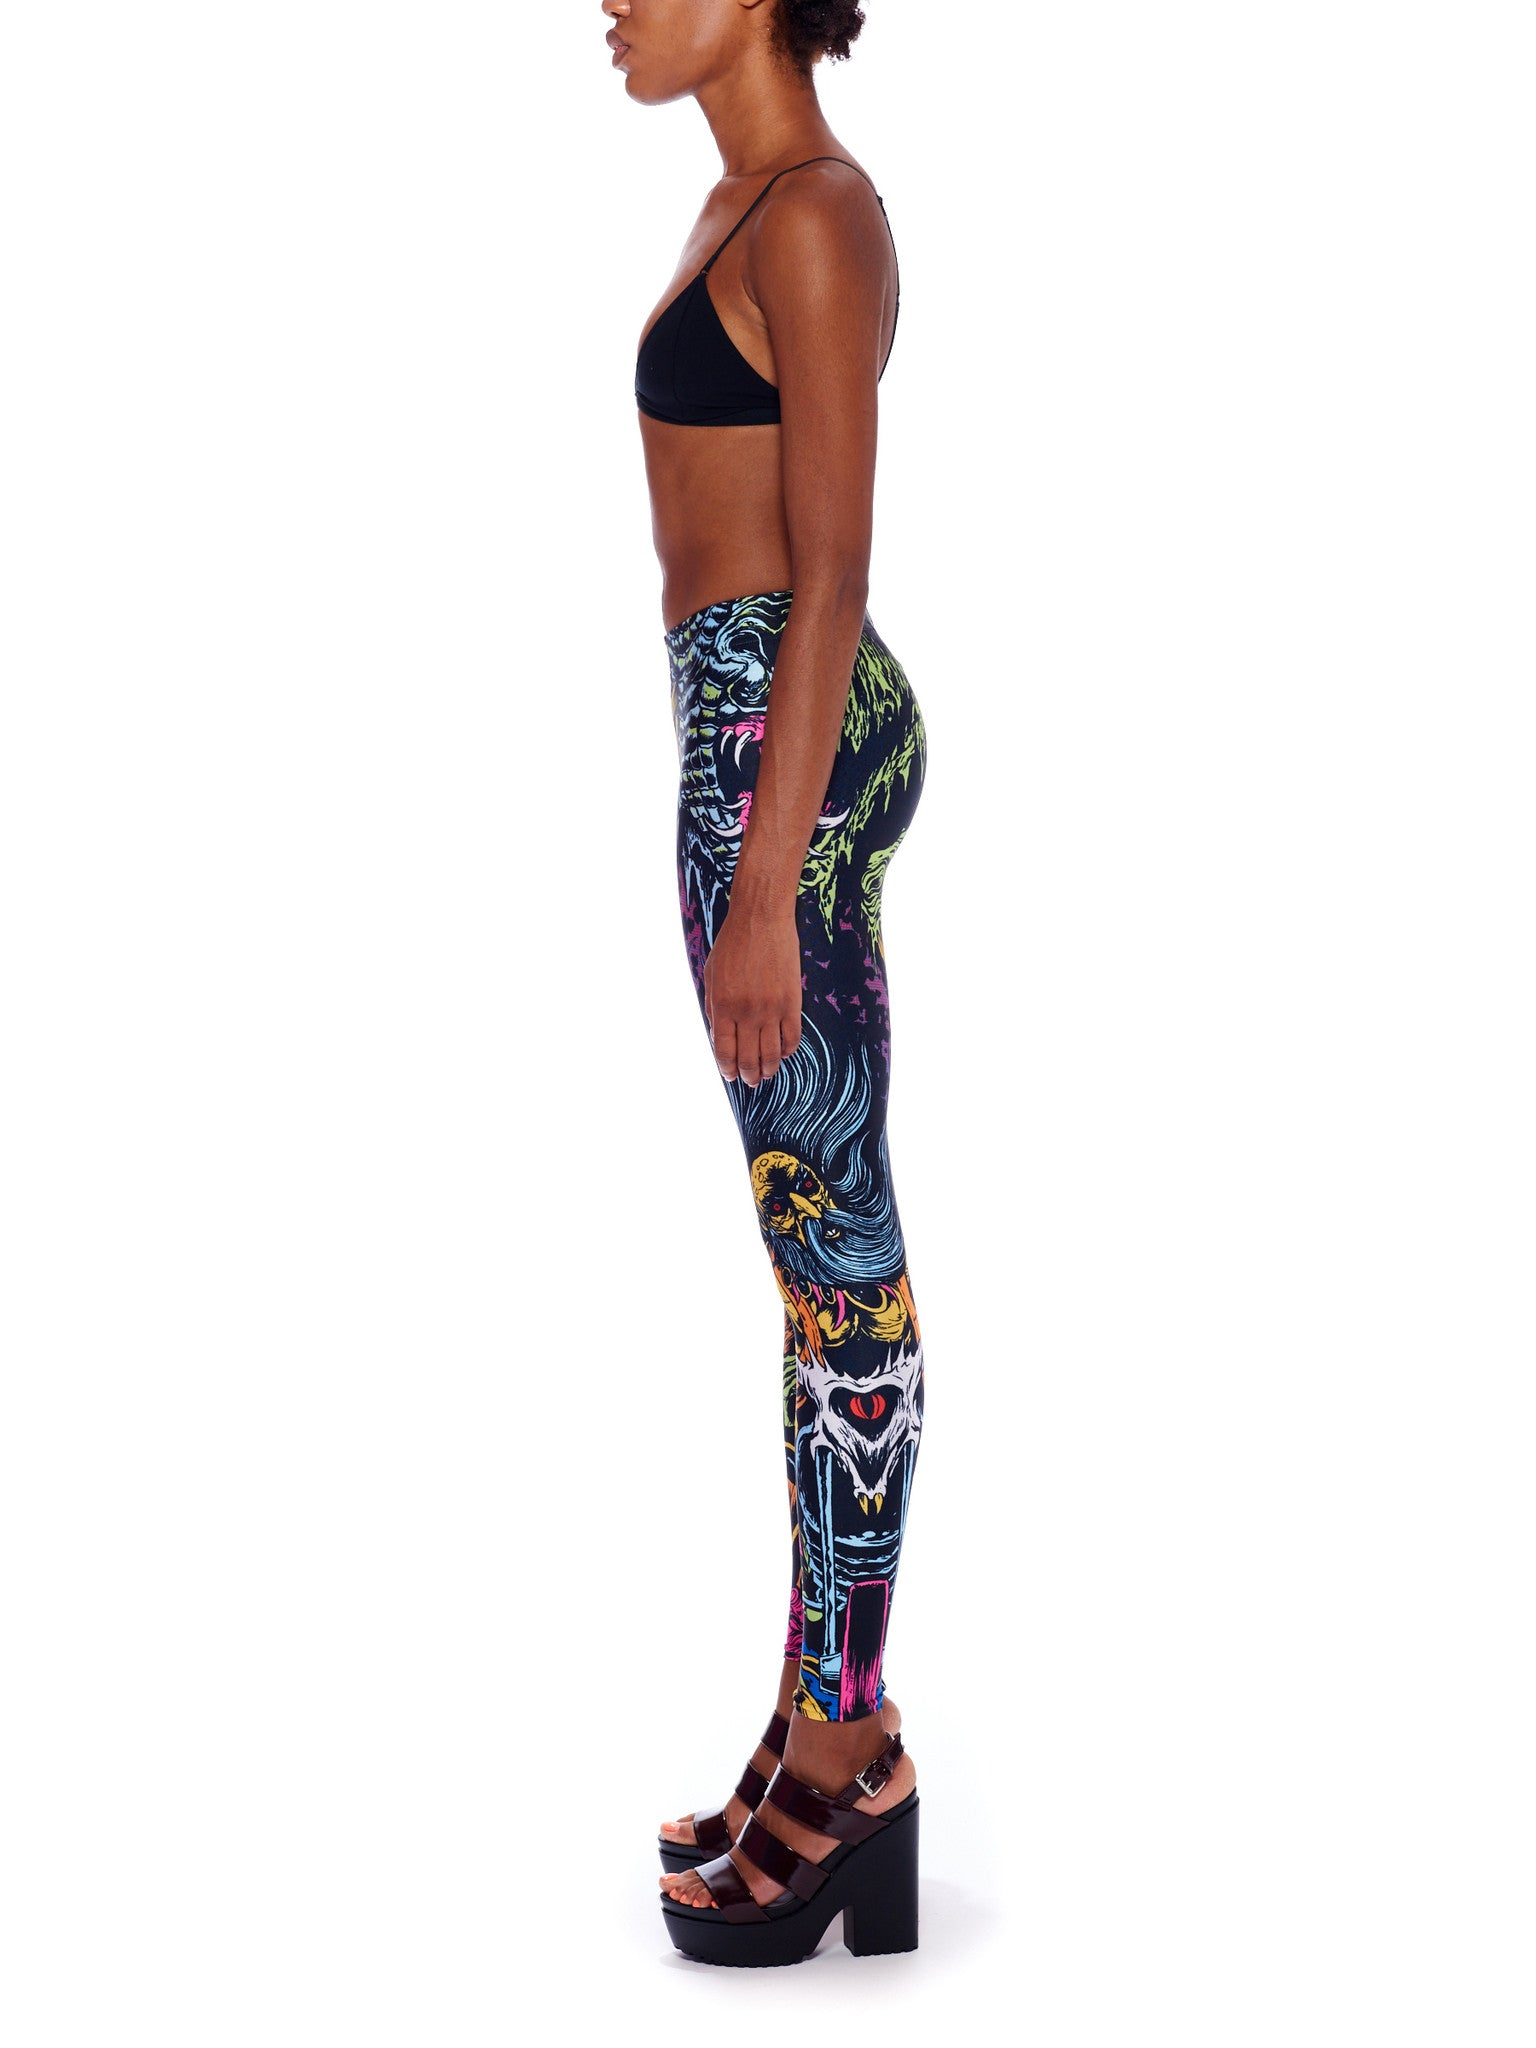 Space Biker Queen West Leggings - Nuvango Gallery & Goods - 4